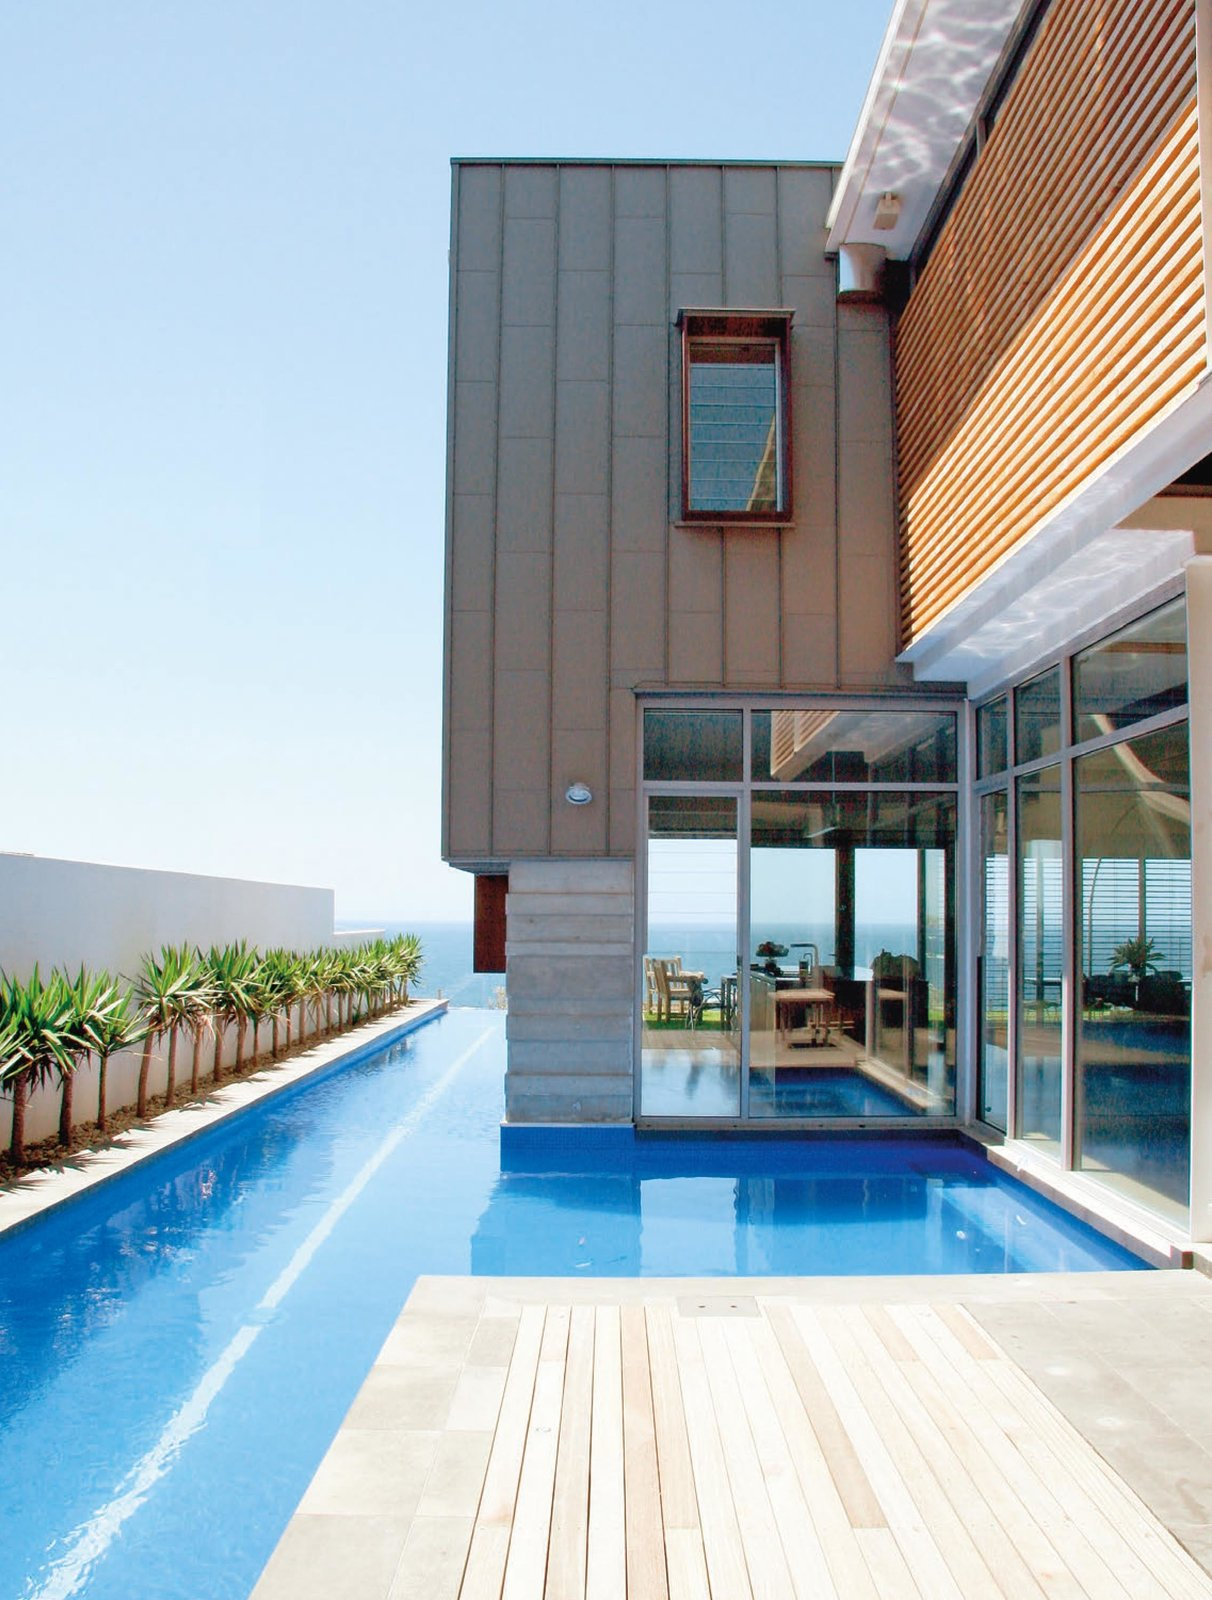 Wright Feldhusen Architects designed this house for a client that loves to swim. A lap pool connects the home to the ocean that lies beyond the property in Maroubra, Australia, a suburb of Sydney.  Modern Beach Homes in Australia by Matthew Keeshin from Amazing Waterfront Residences Around the World